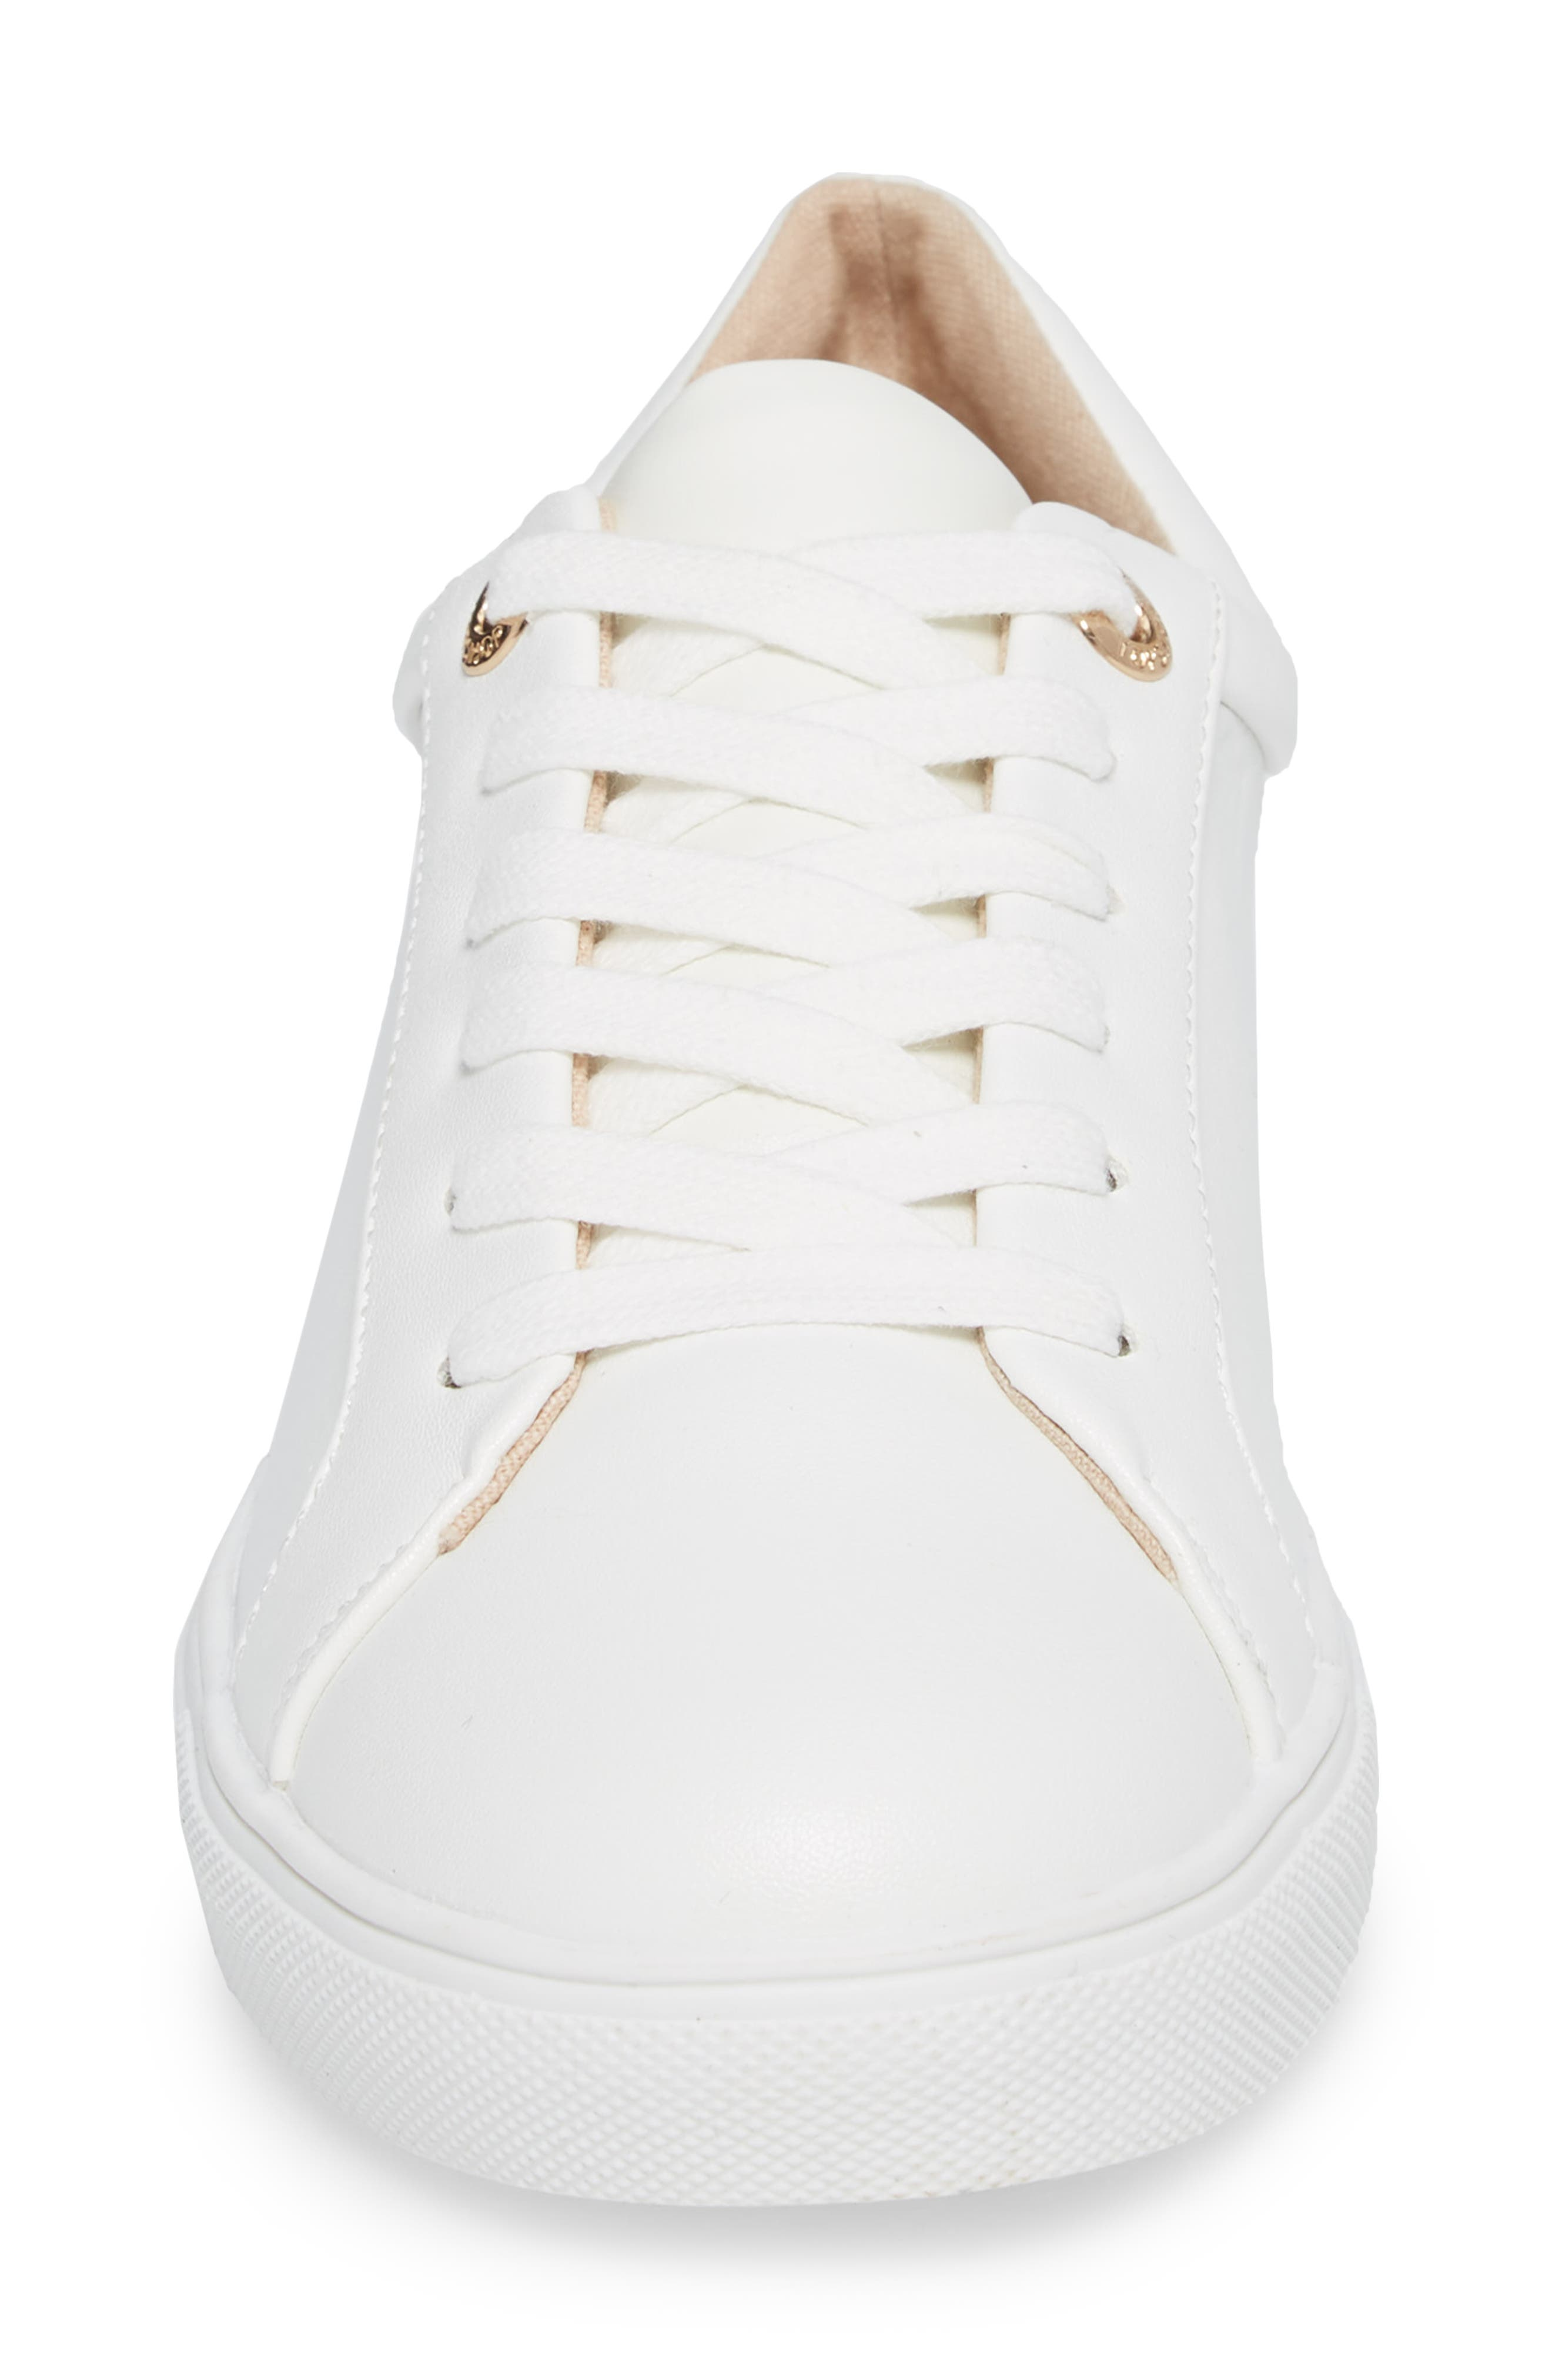 Cookie Low Top Sneaker,                             Alternate thumbnail 4, color,                             White